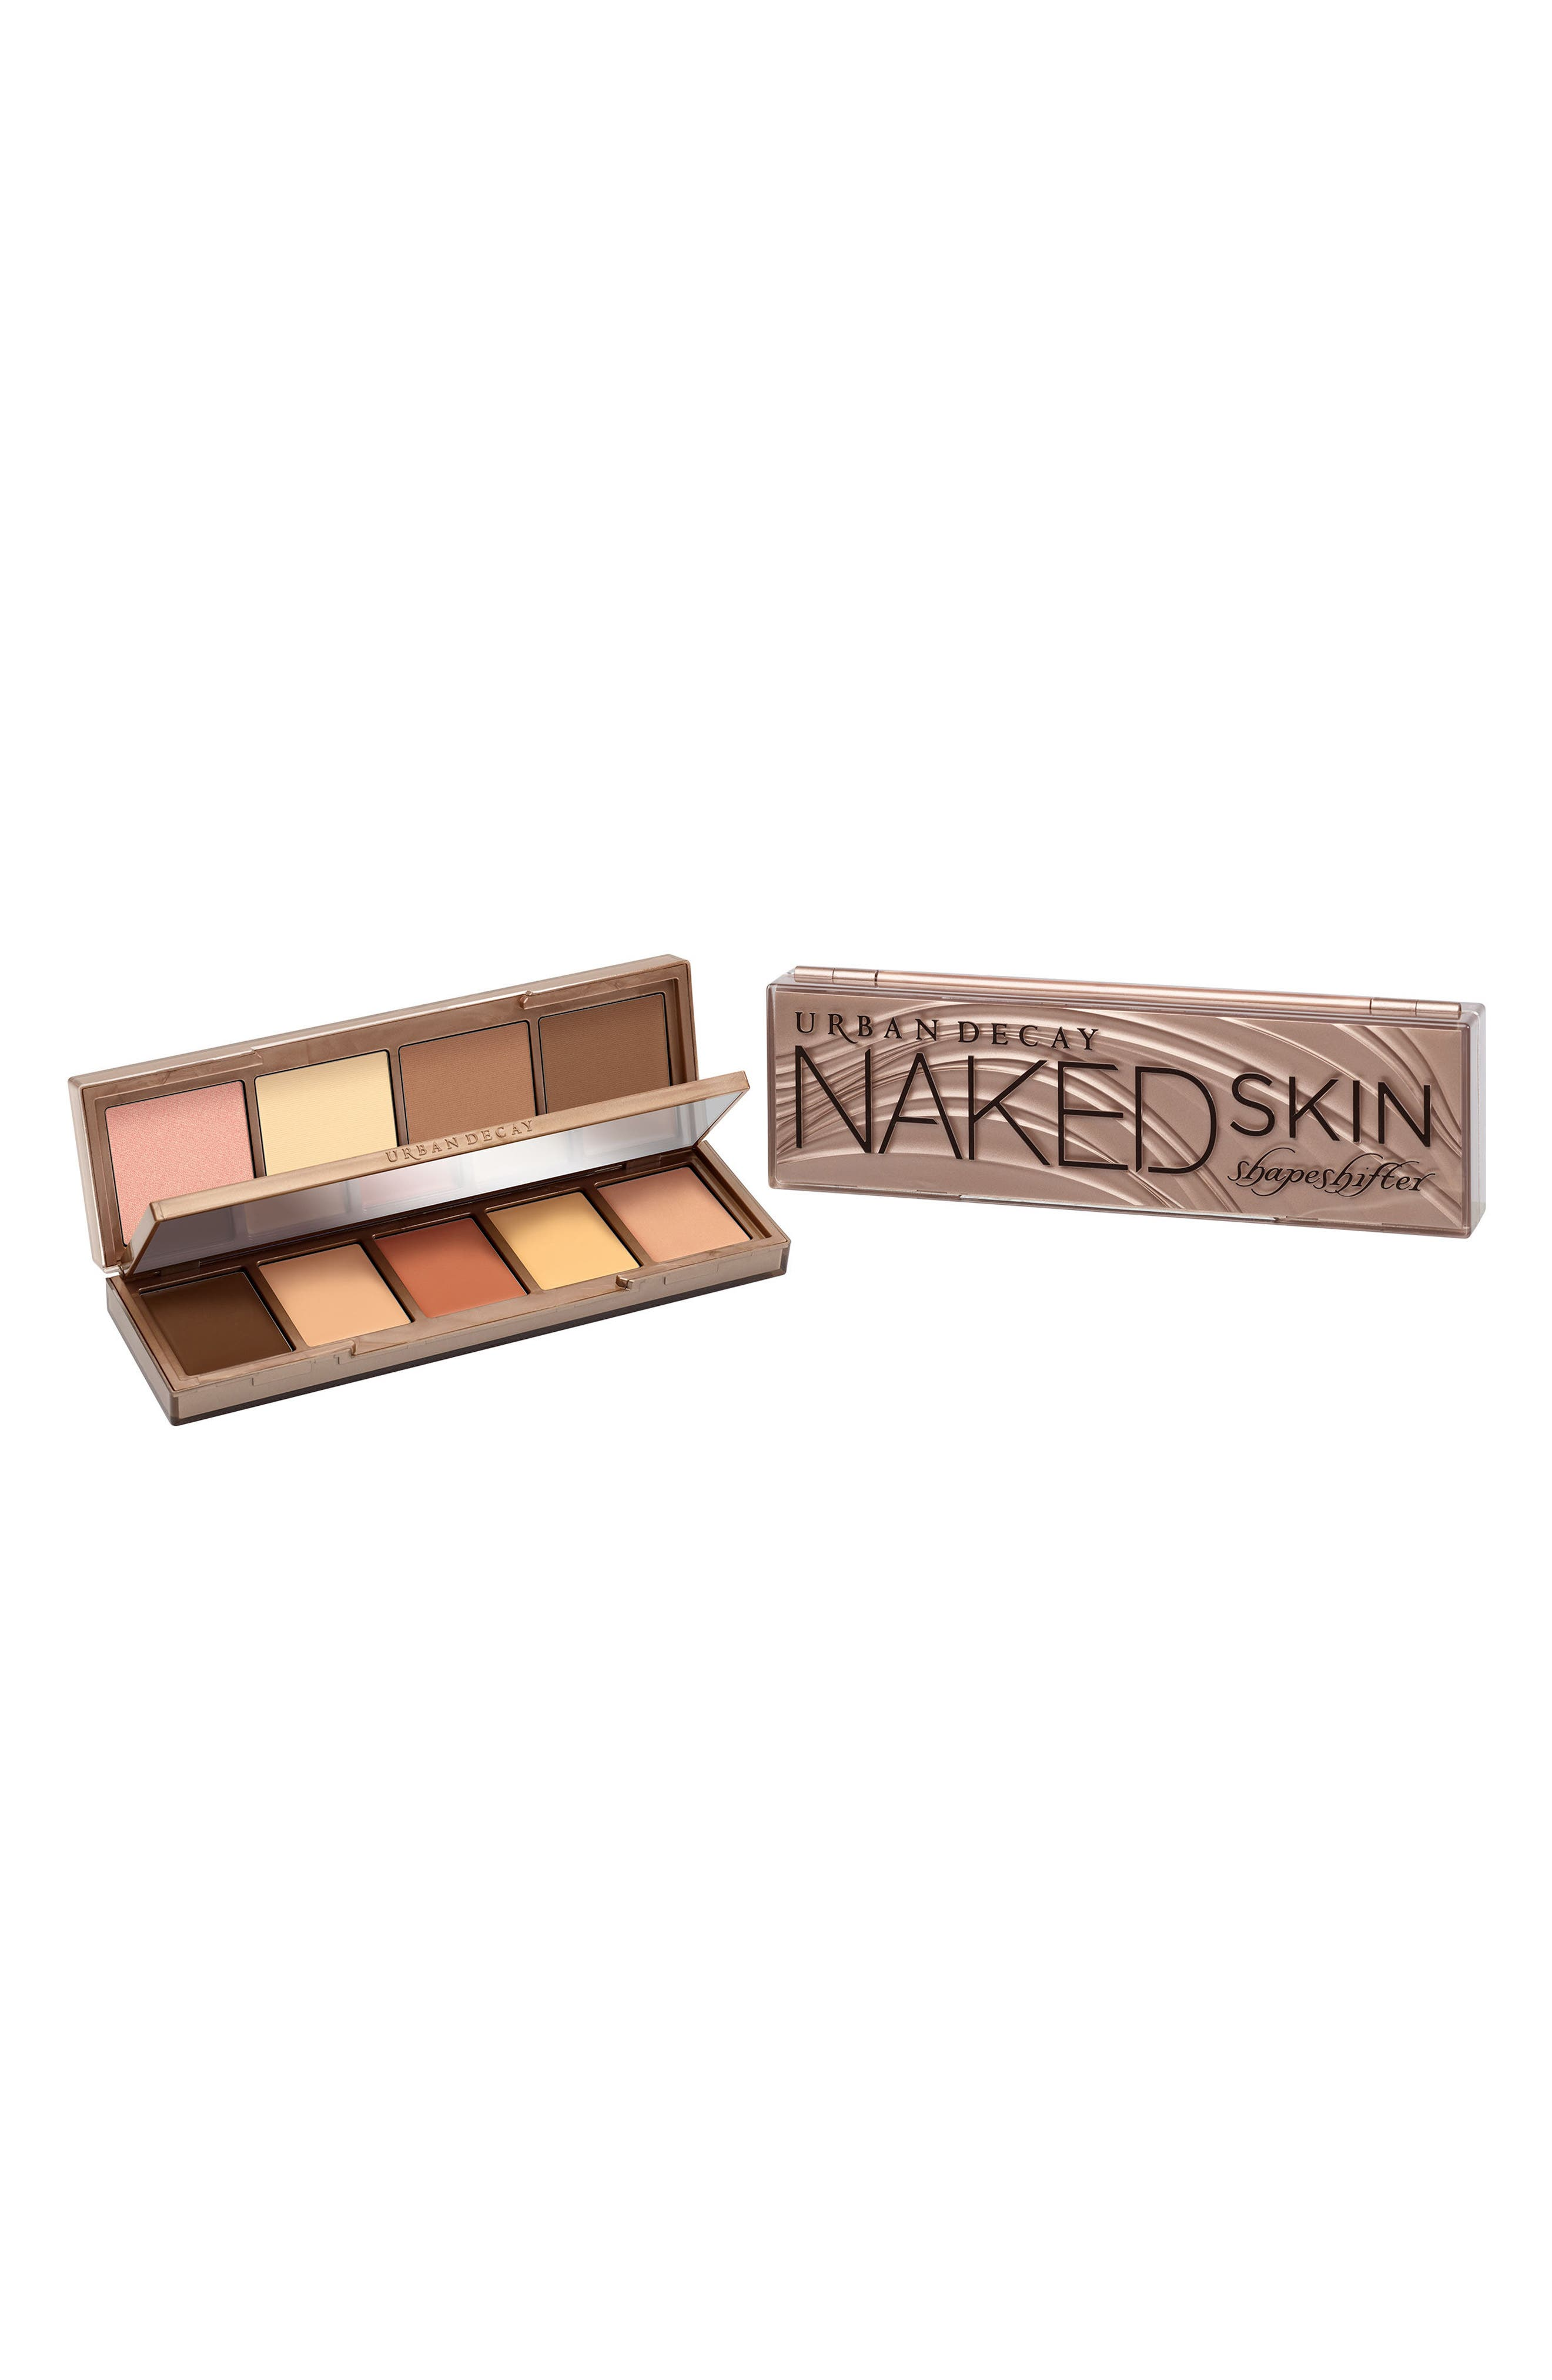 Main Image - Urban Decay Naked Skin Shapeshifter Palette